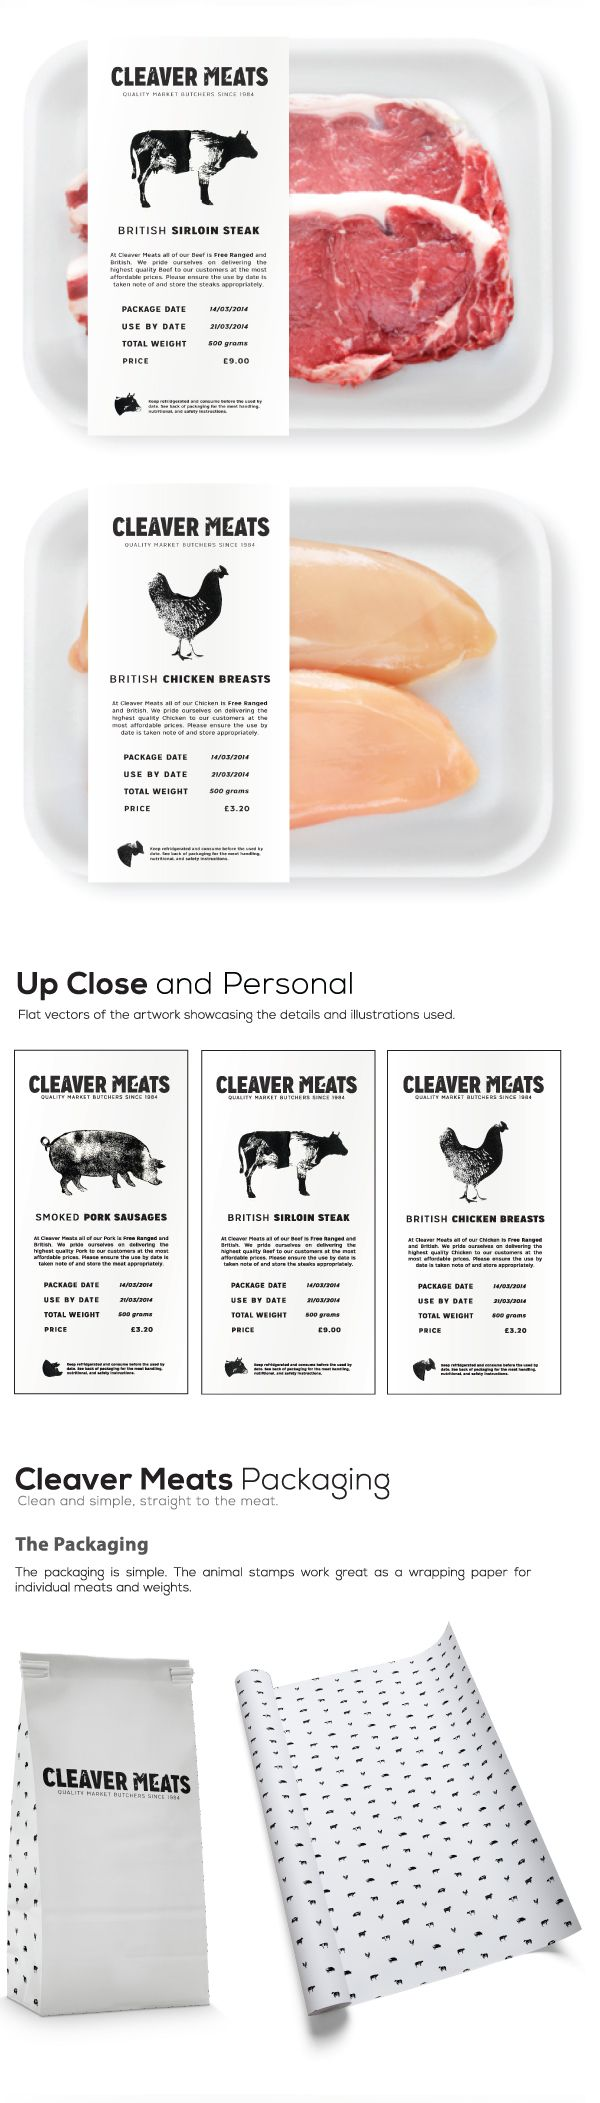 Cleaver Meats Butcher Shop on Behance